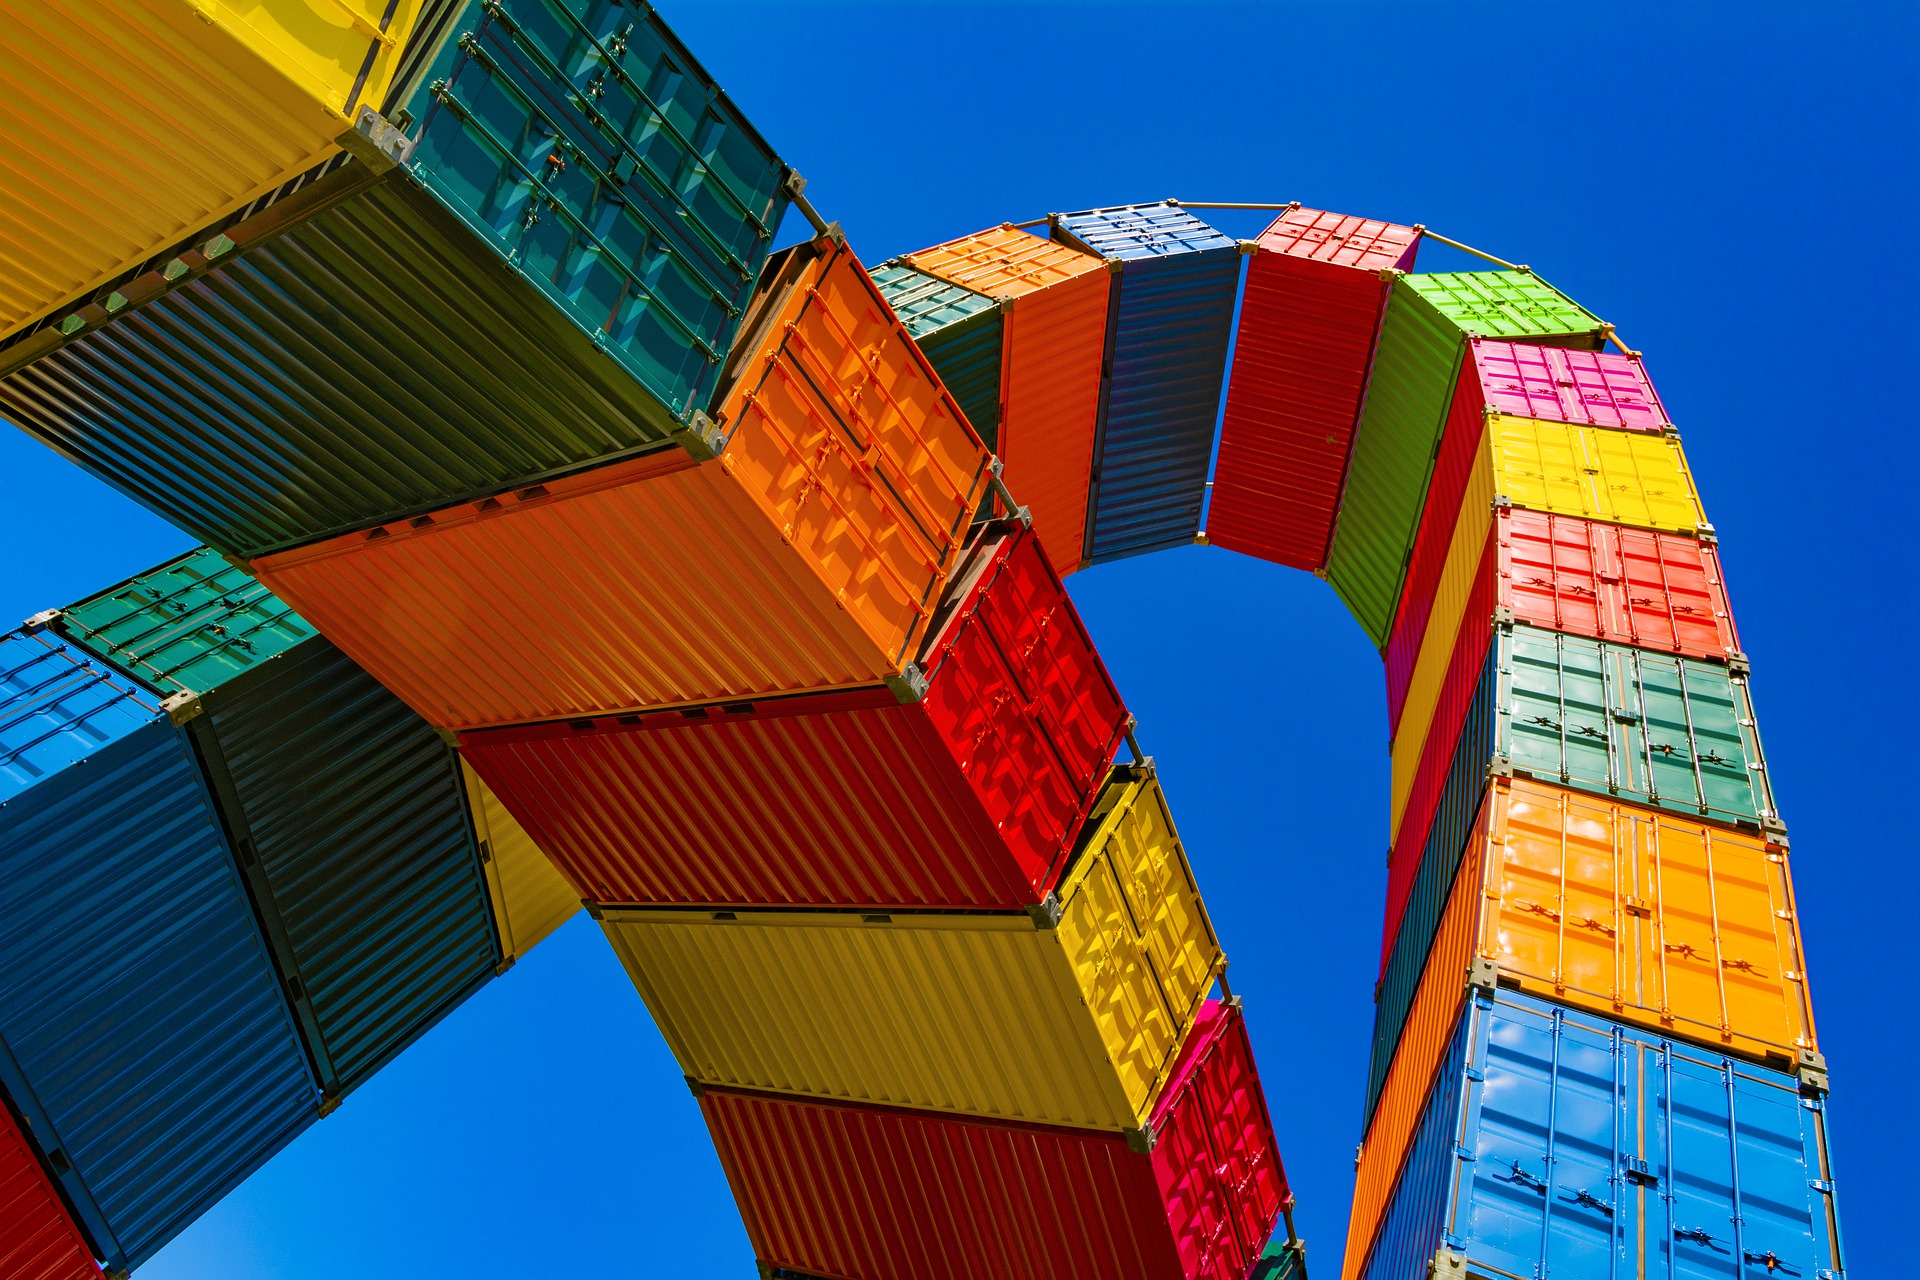 container by Valdas Miskinis from Pixabay